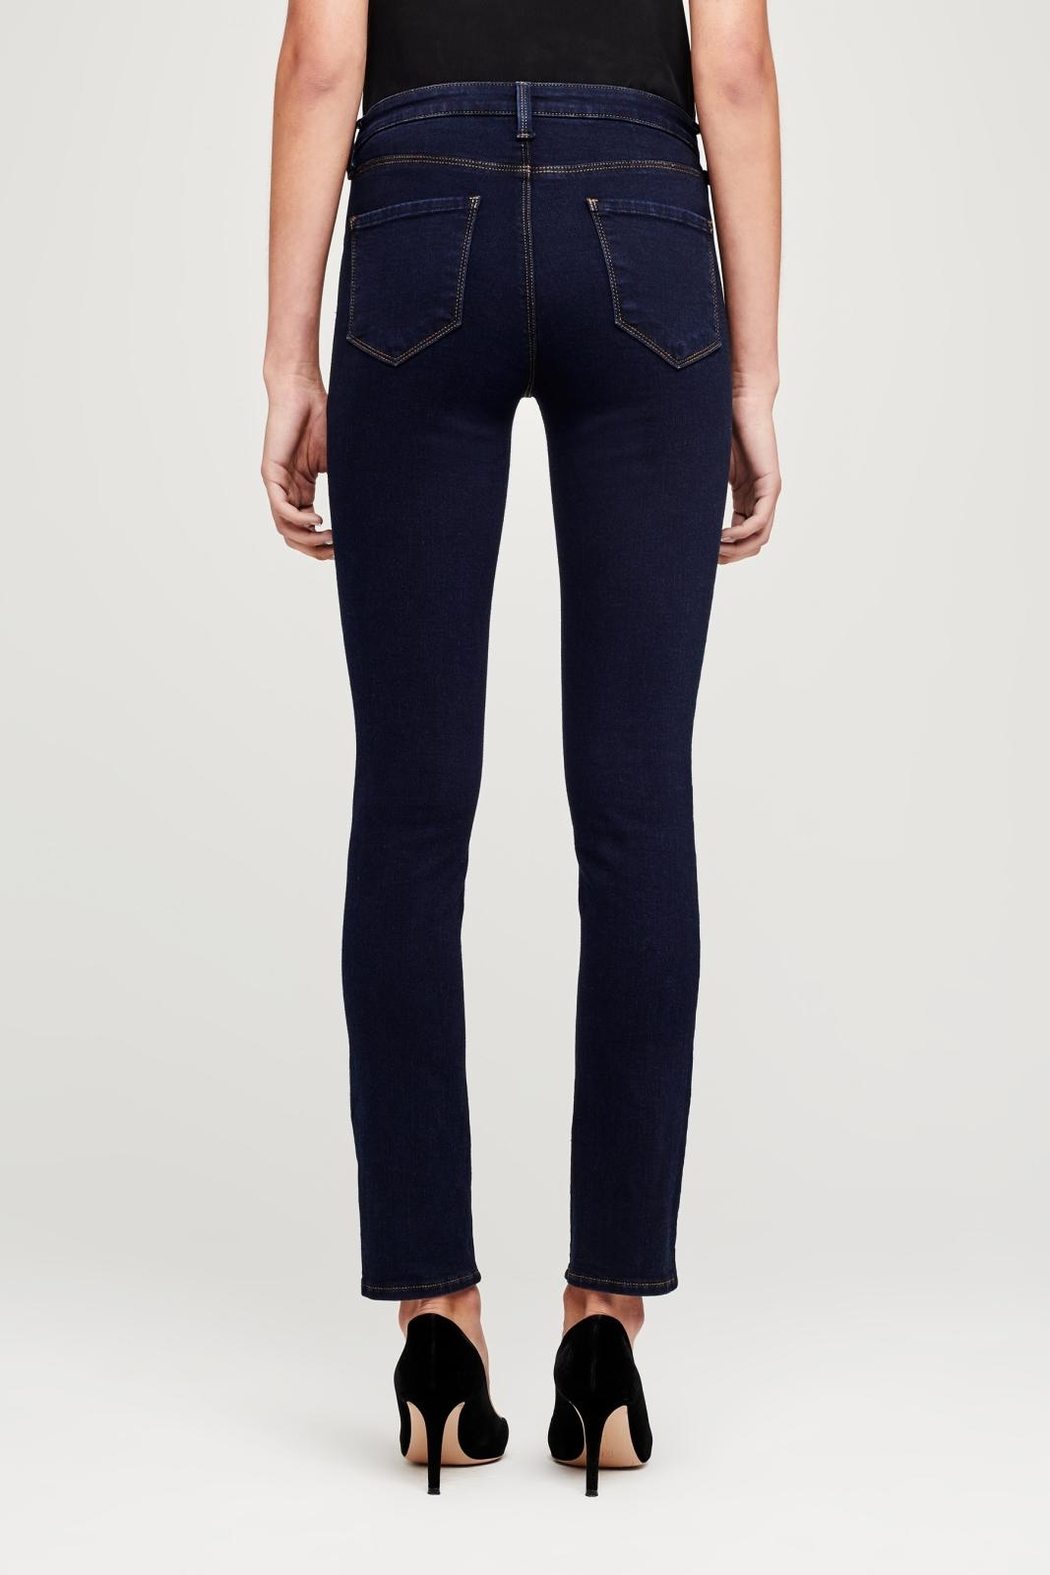 L'Agence Tilly Mid-Rise Jeans - Side Cropped Image